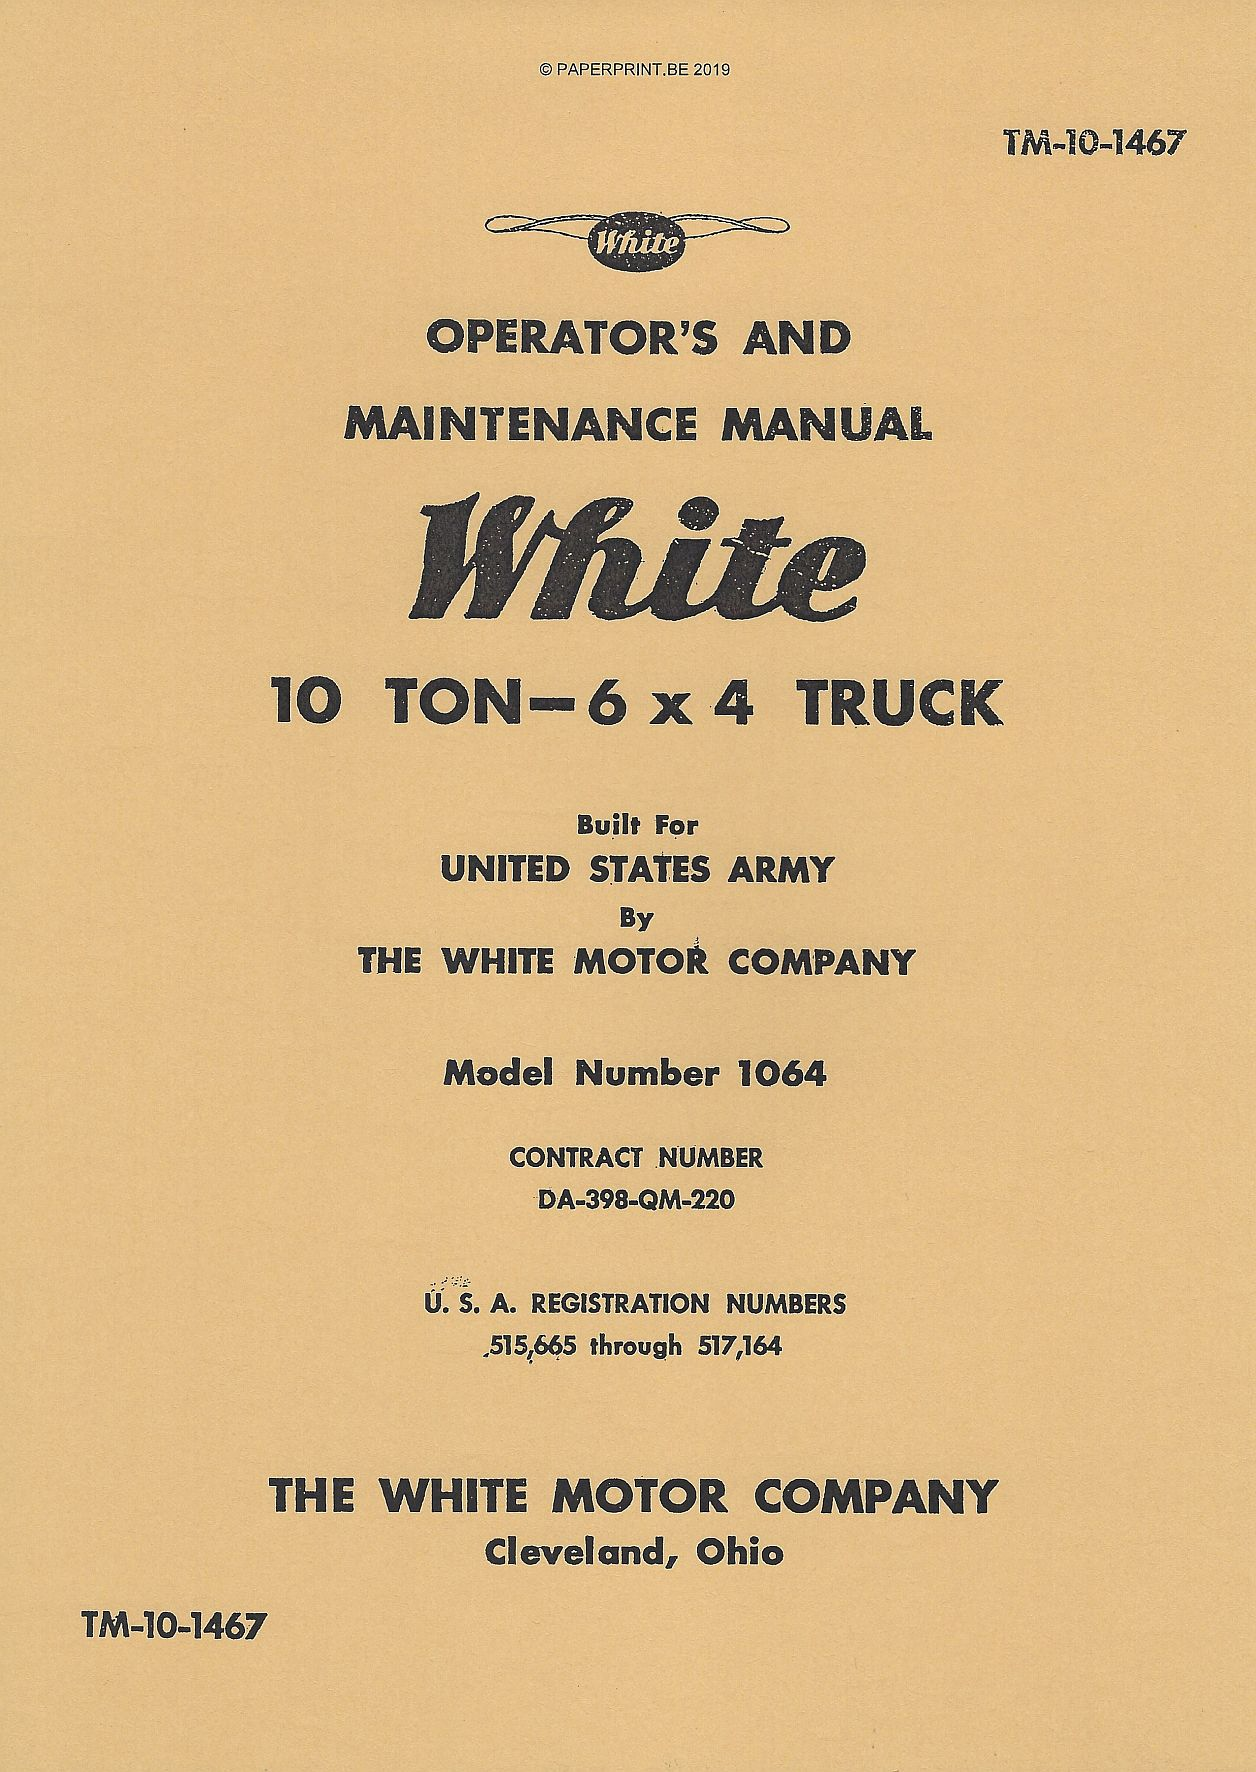 TM 10-1467 US WHITE 6x4 MODEL 1064 OPERATORS AND MAINTENANCE MANUAL